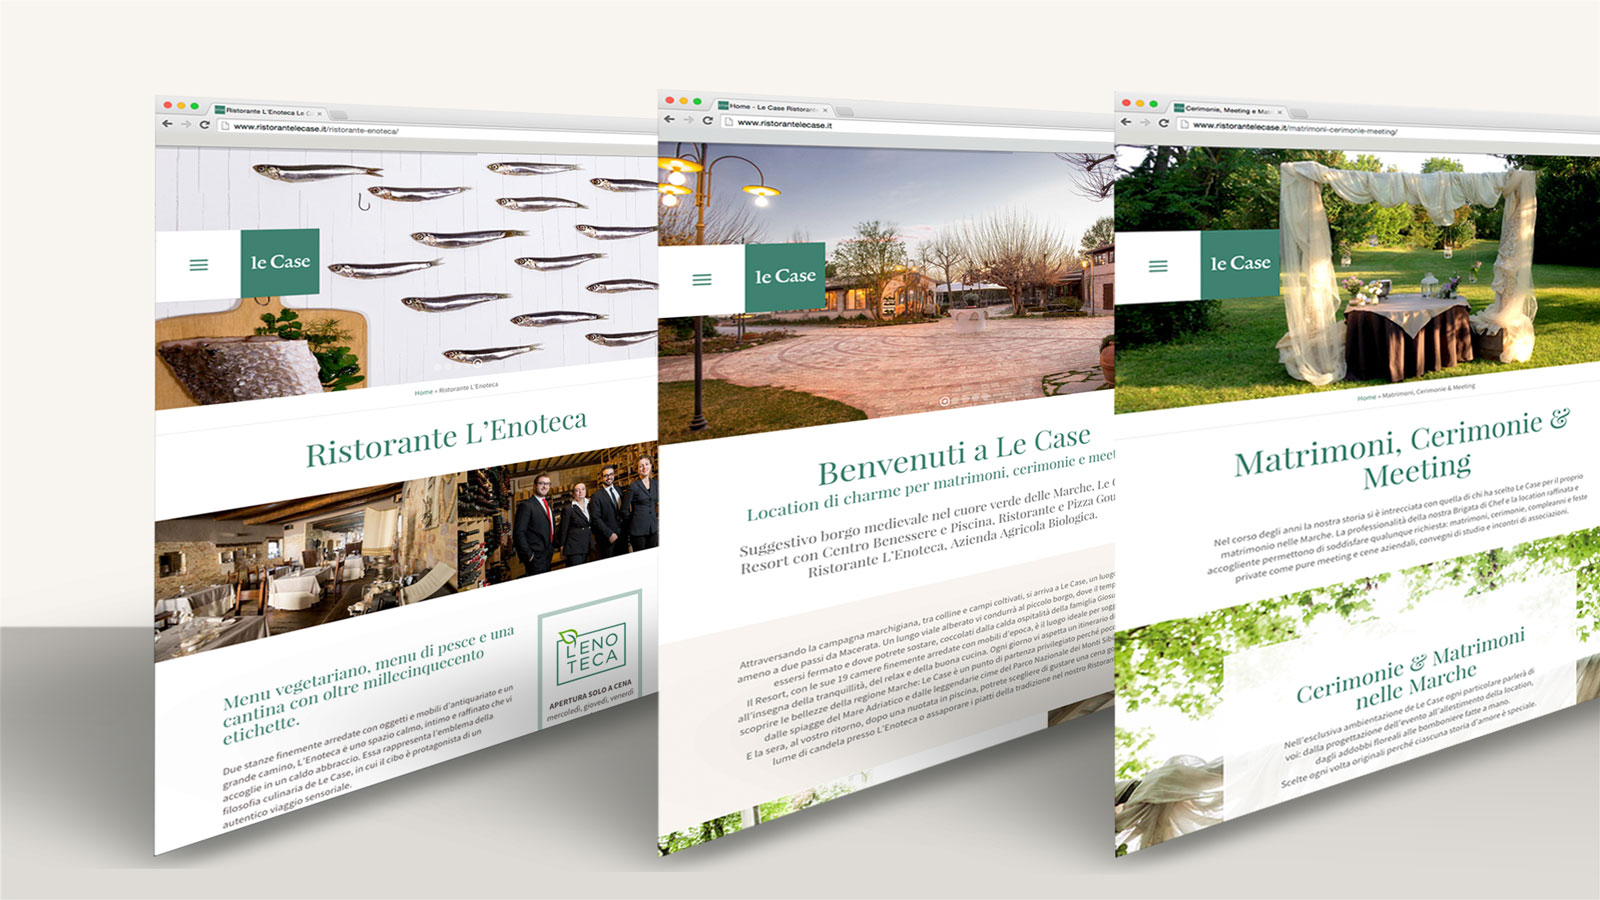 Web Design e Web Marketing turistico per il Ristorante Resort Le Case - Memphiscom, Tolentino